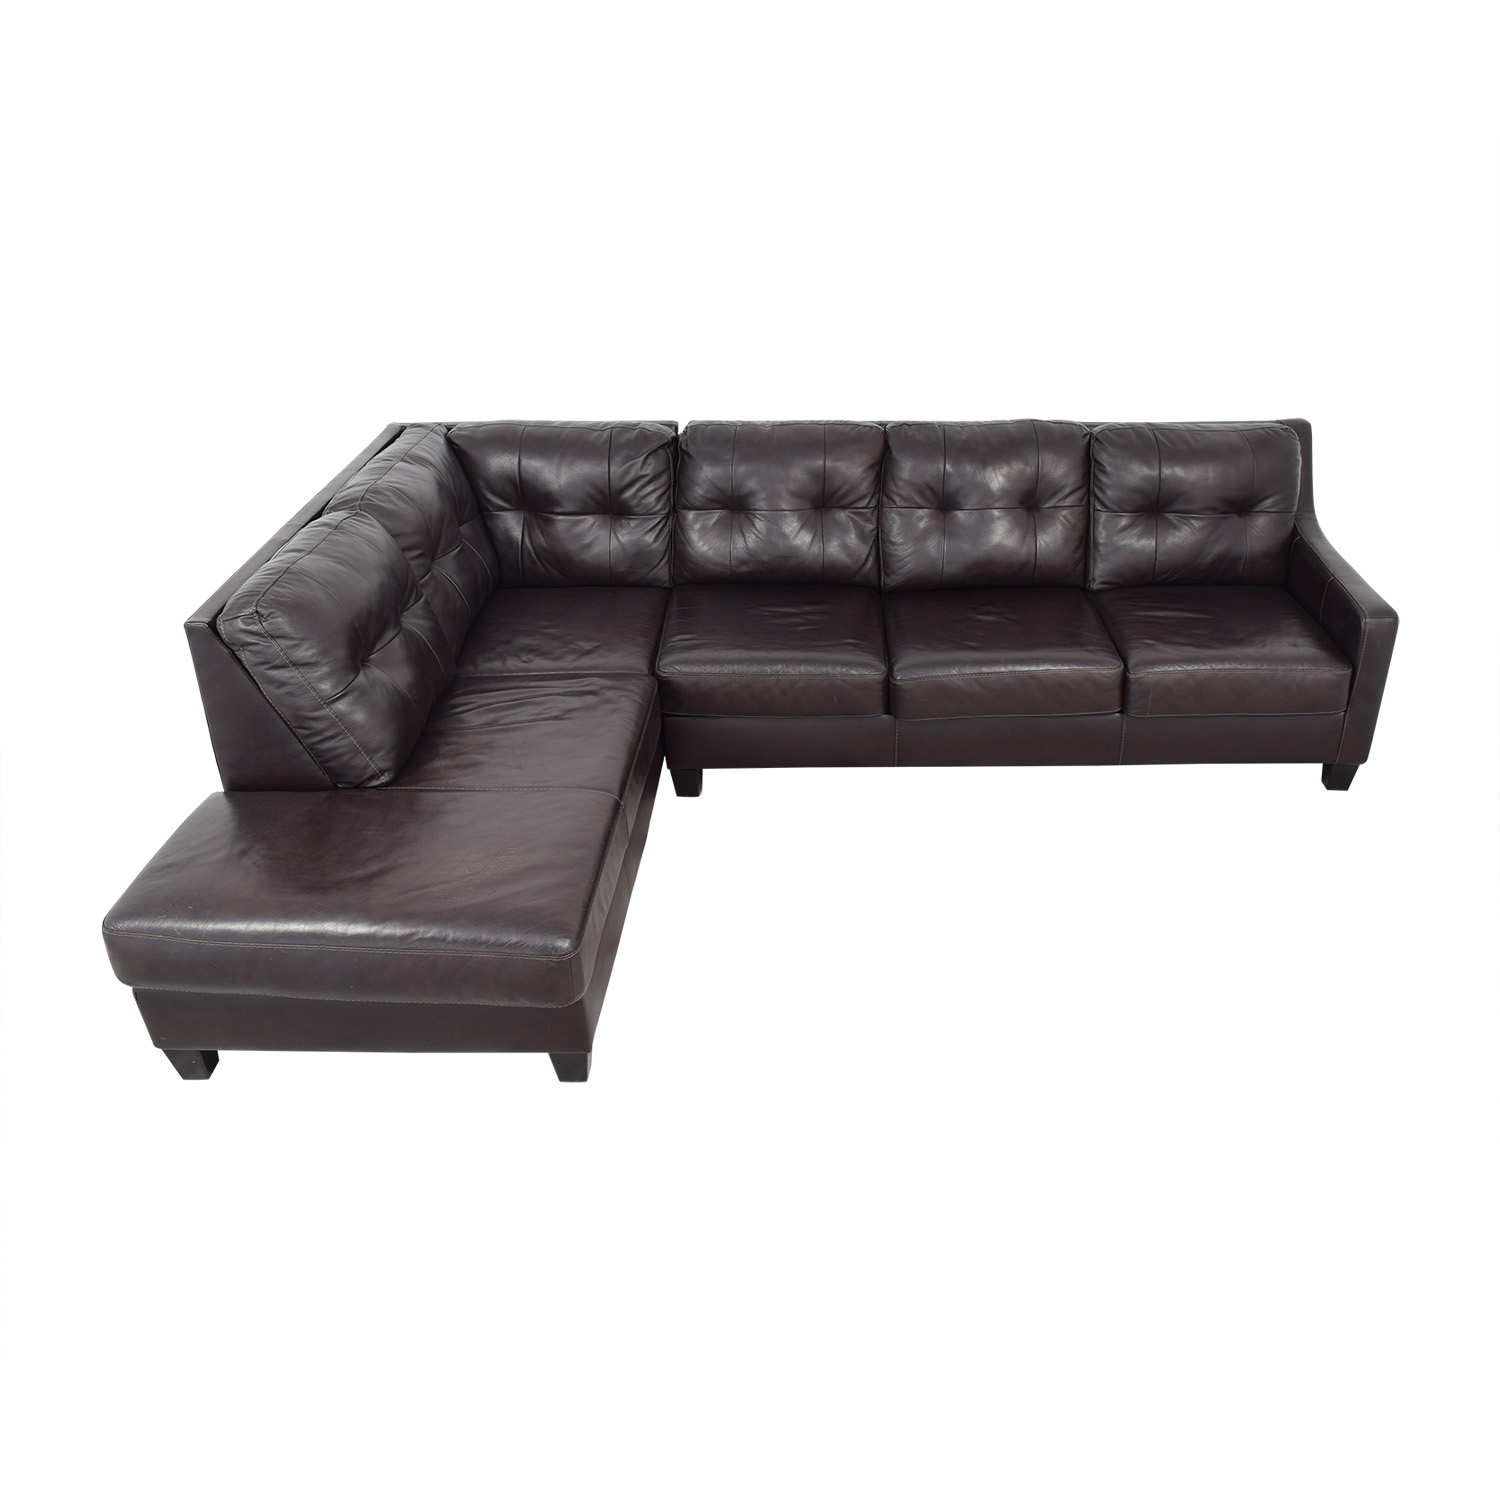 shop Ashley Furniture Ashley Furniture Chaise Sectional Sofa online